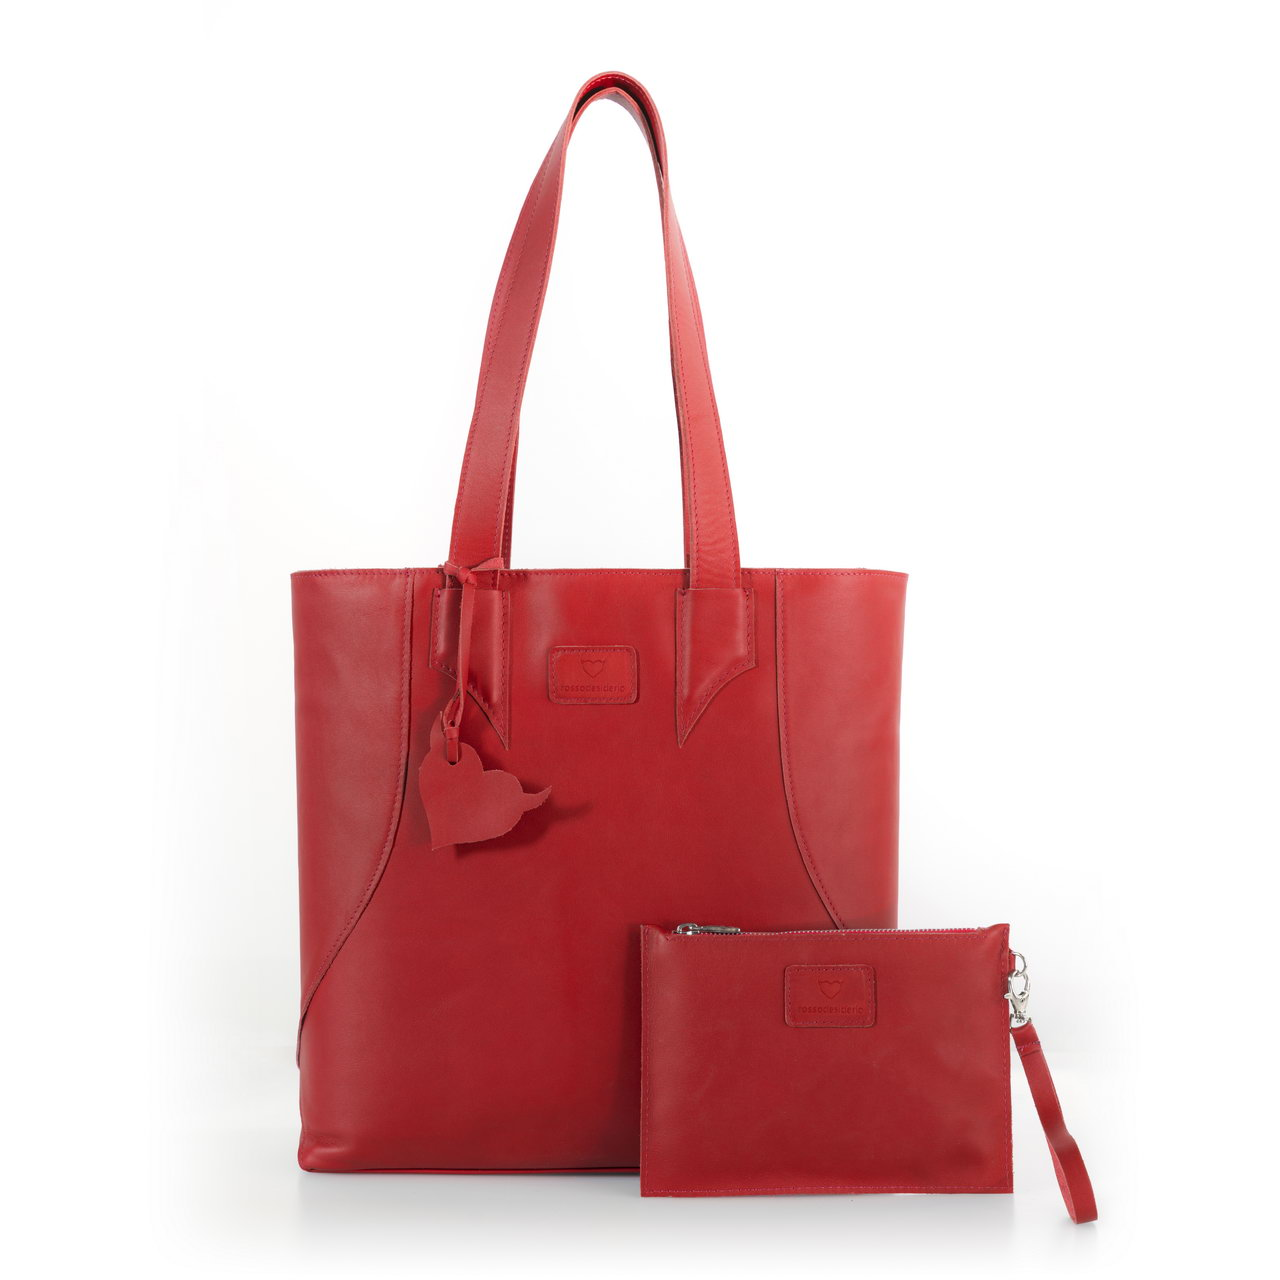 Brava Red, shopper bag made with real leather